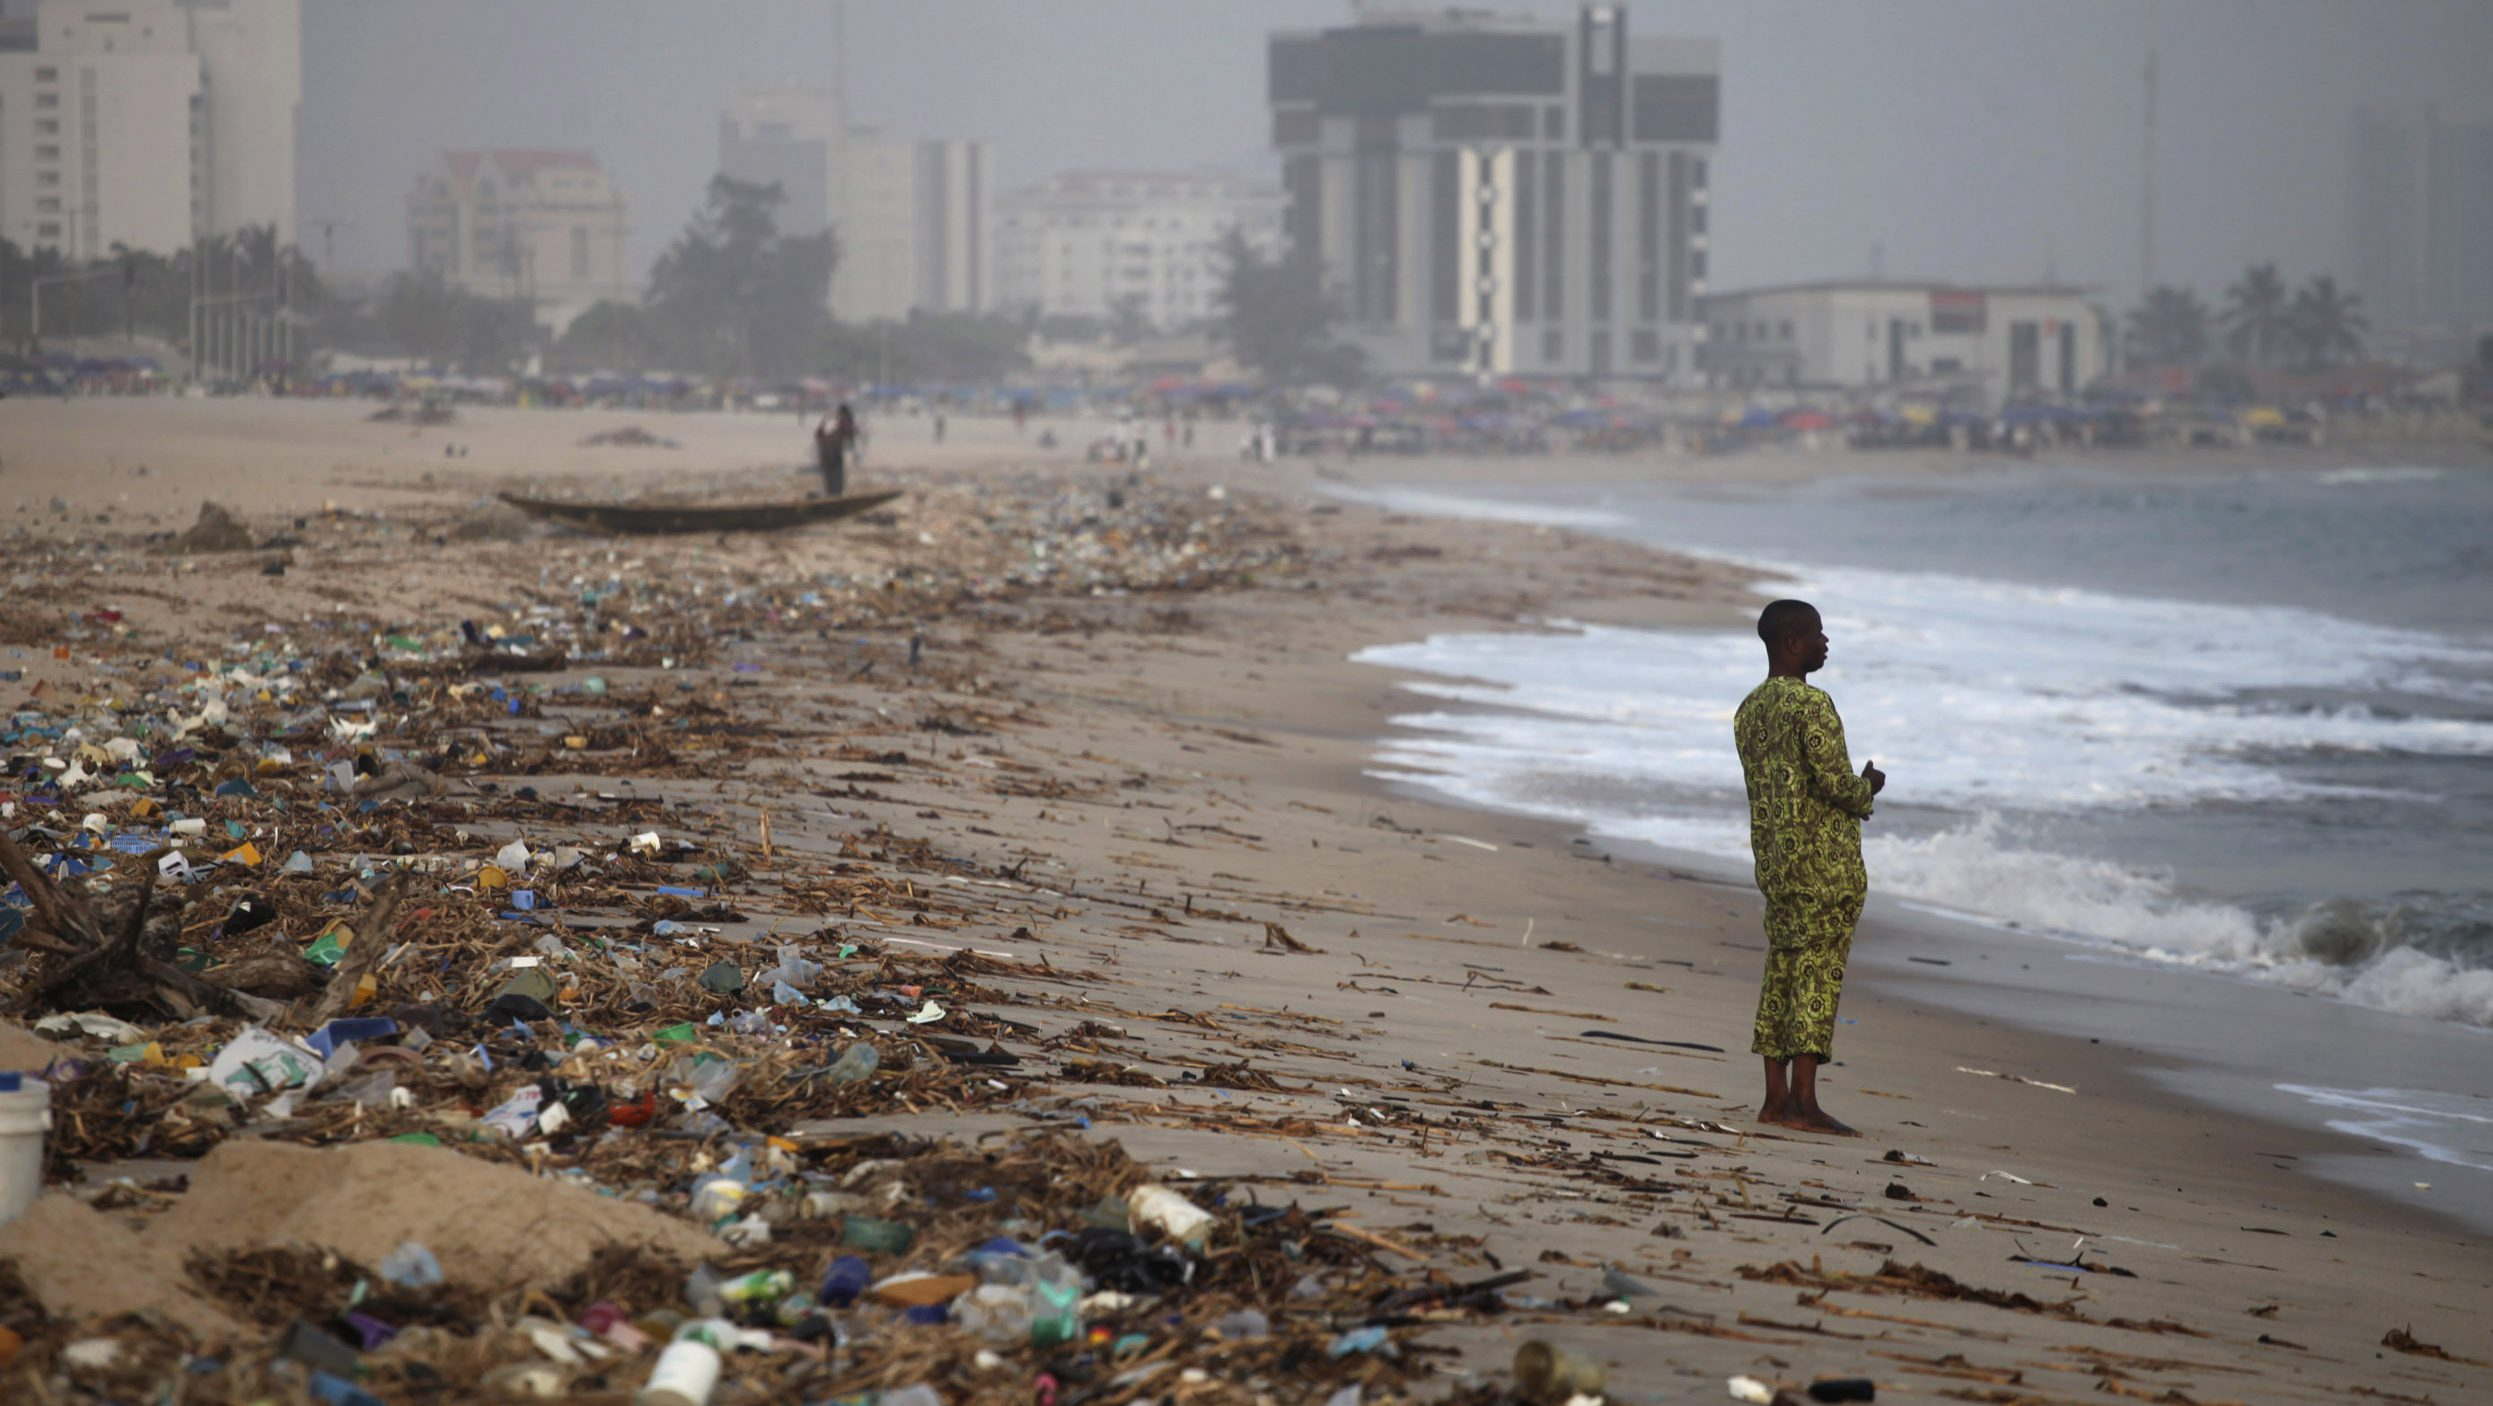 A man stands on the shore of Bar Beach, awash with rubbish and waste, in Lagos